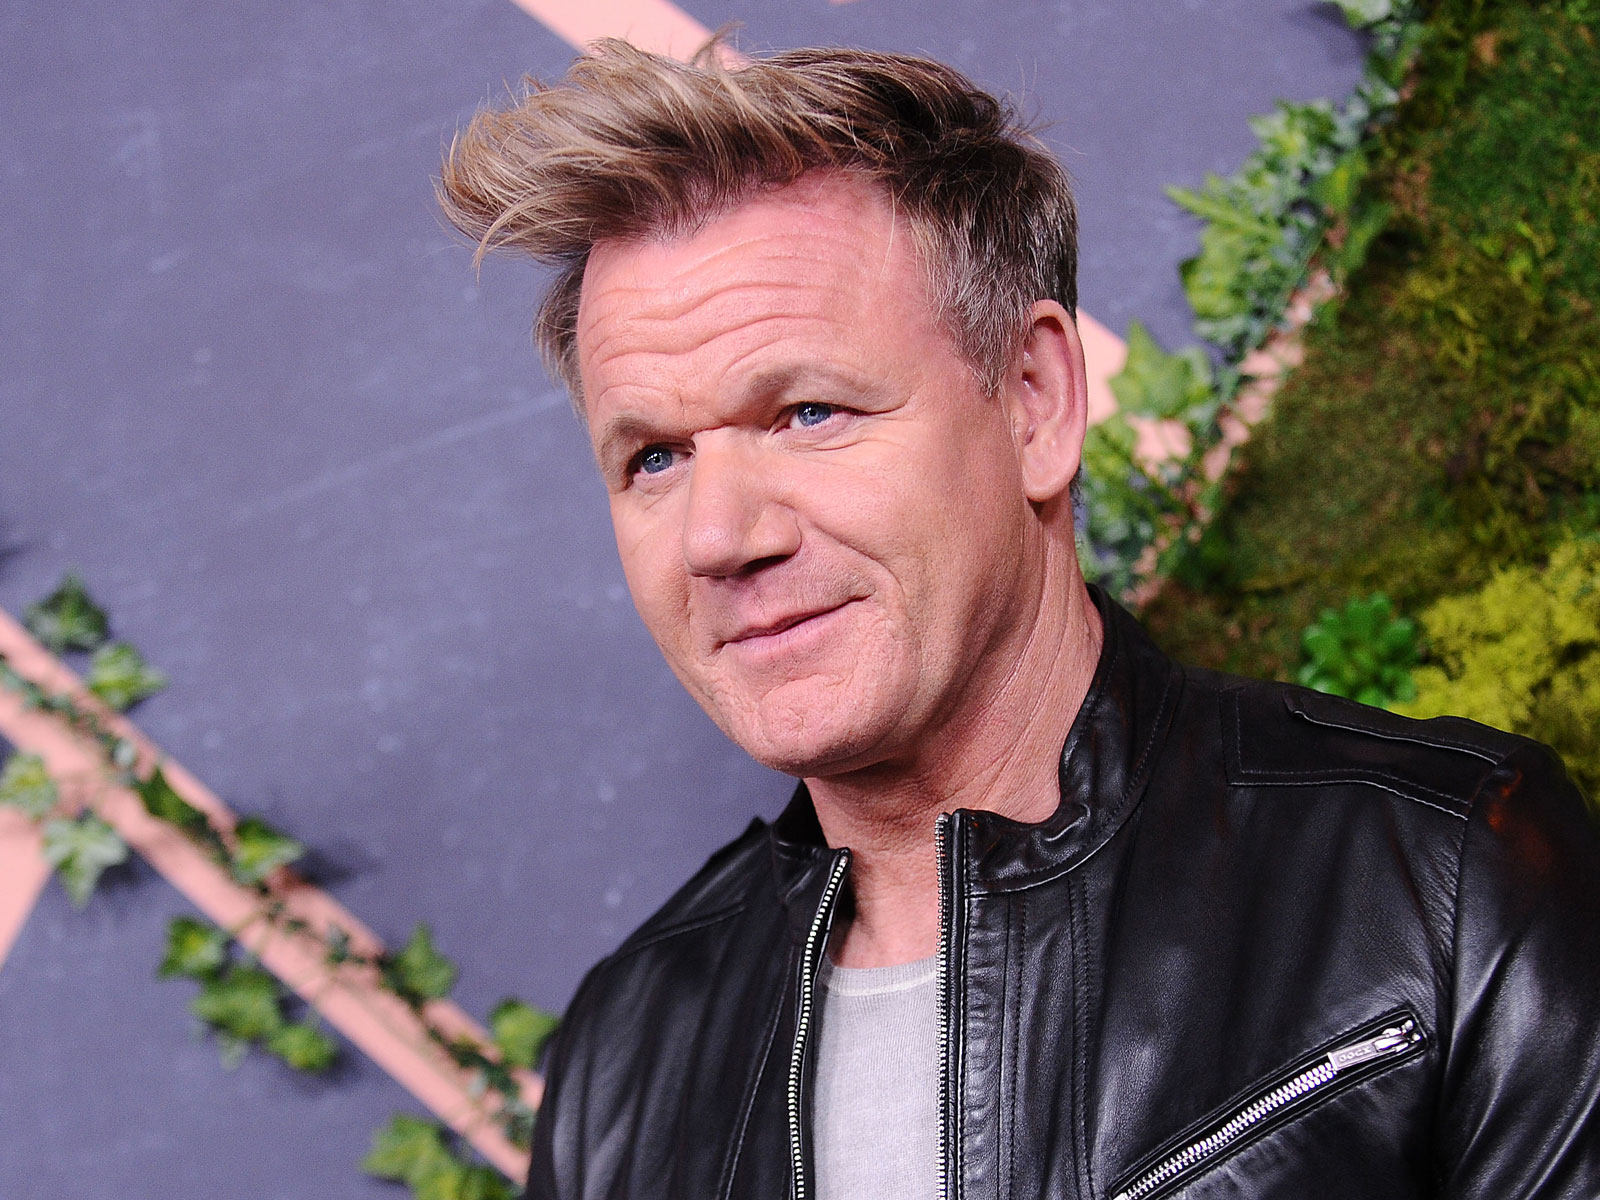 gordon-ramsay-alexa-FT-BLOG0118.jpg